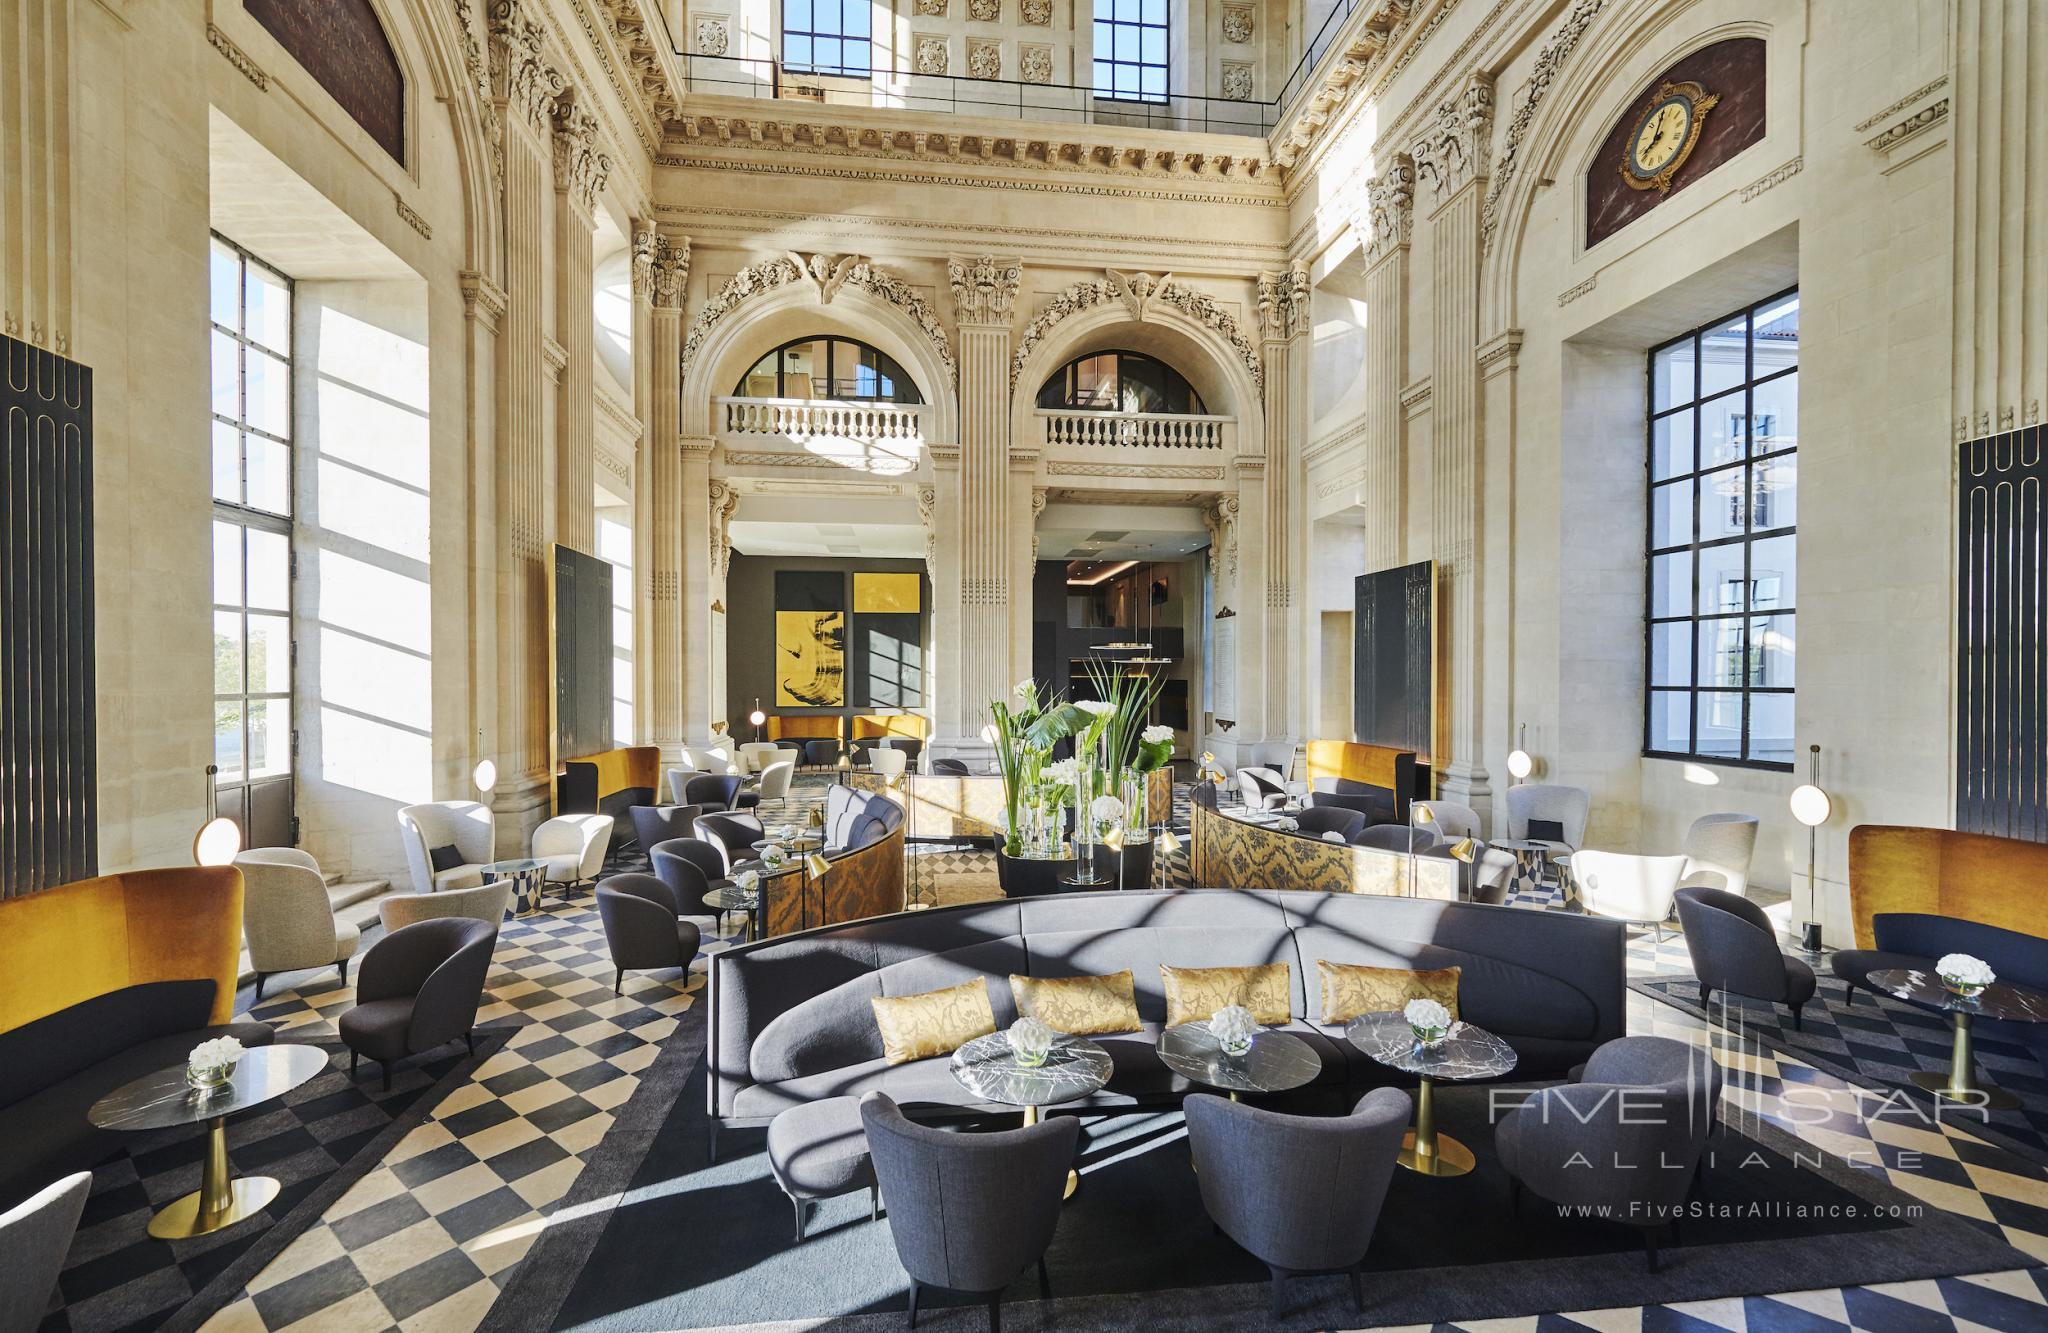 Lobby of InterContinental Lyon - Hotel Dieu